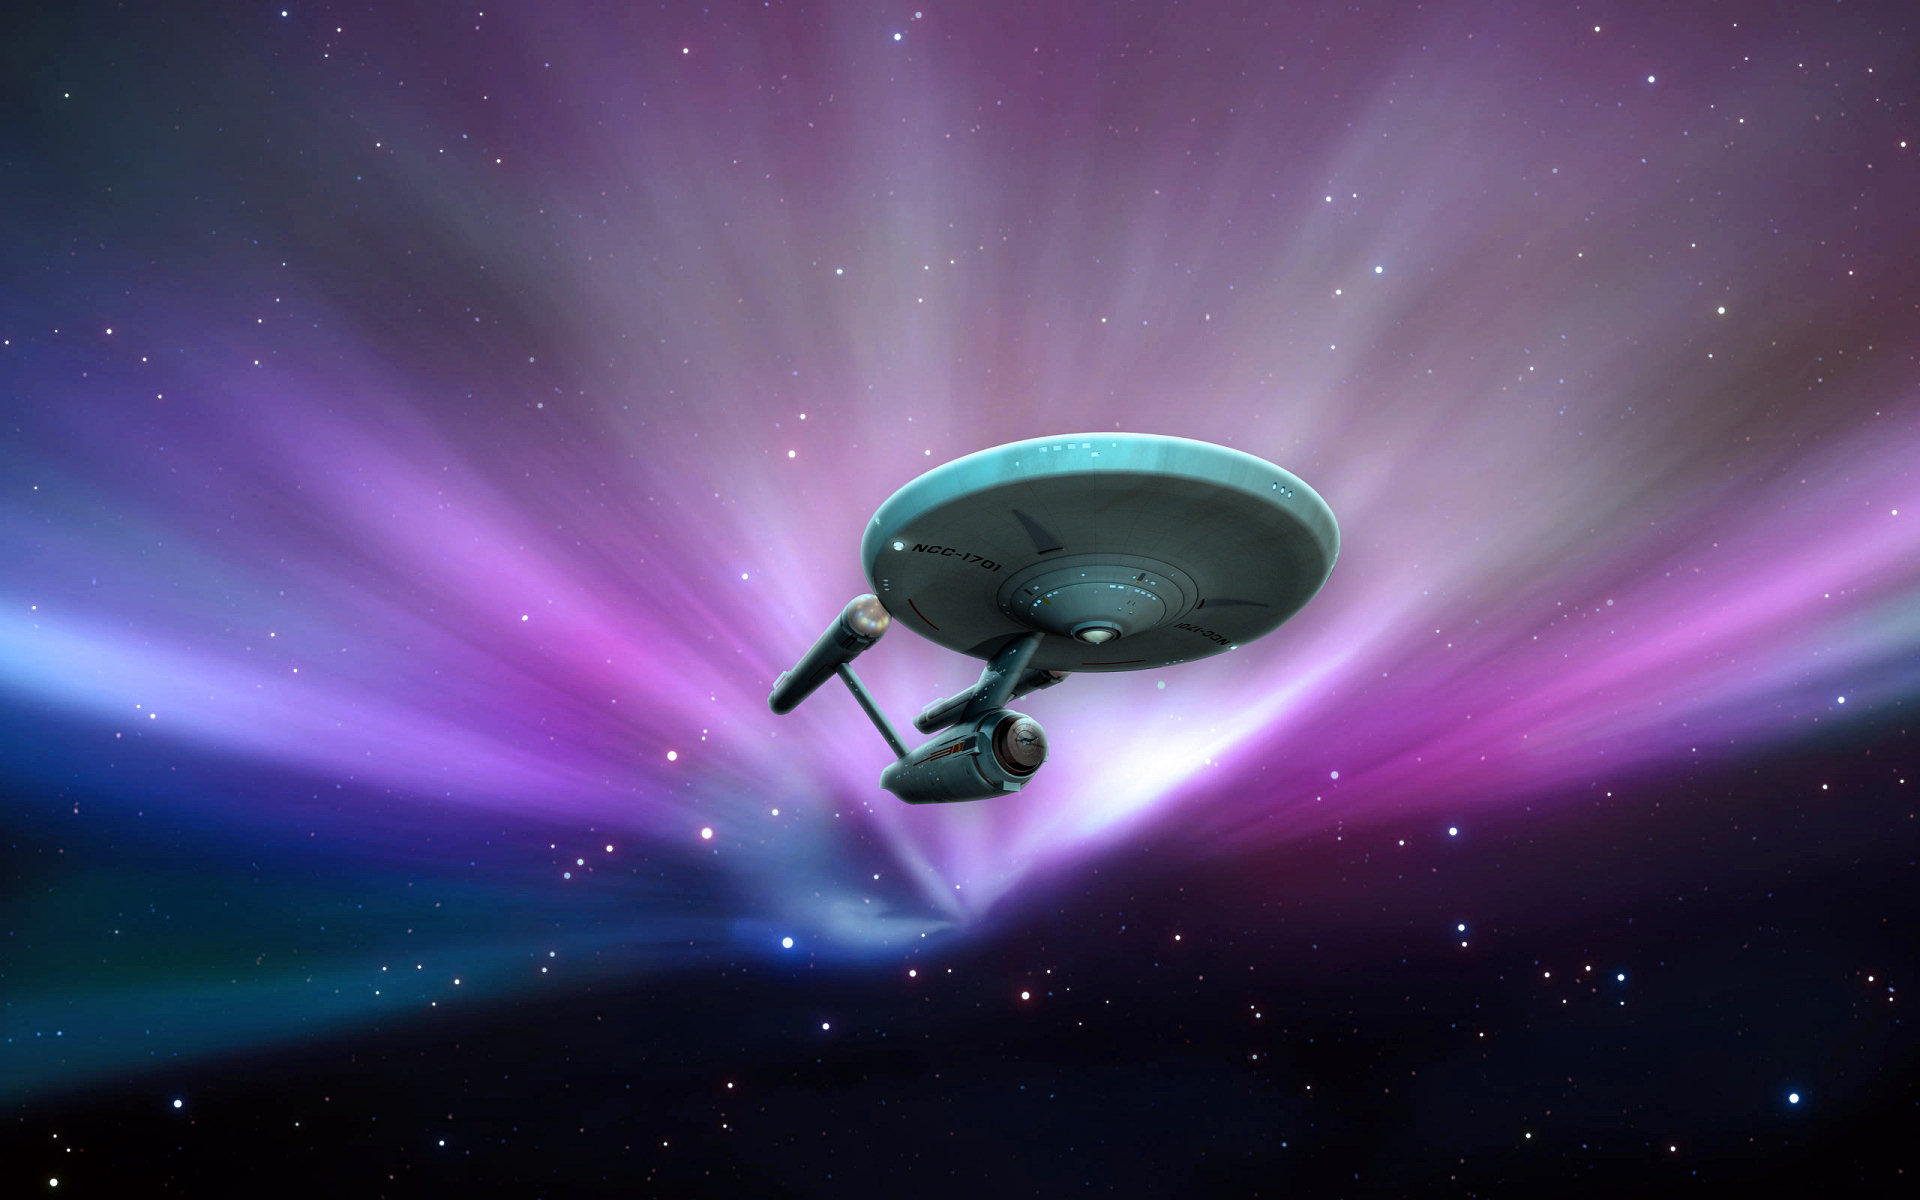 Star Trek Wallpapers For Android